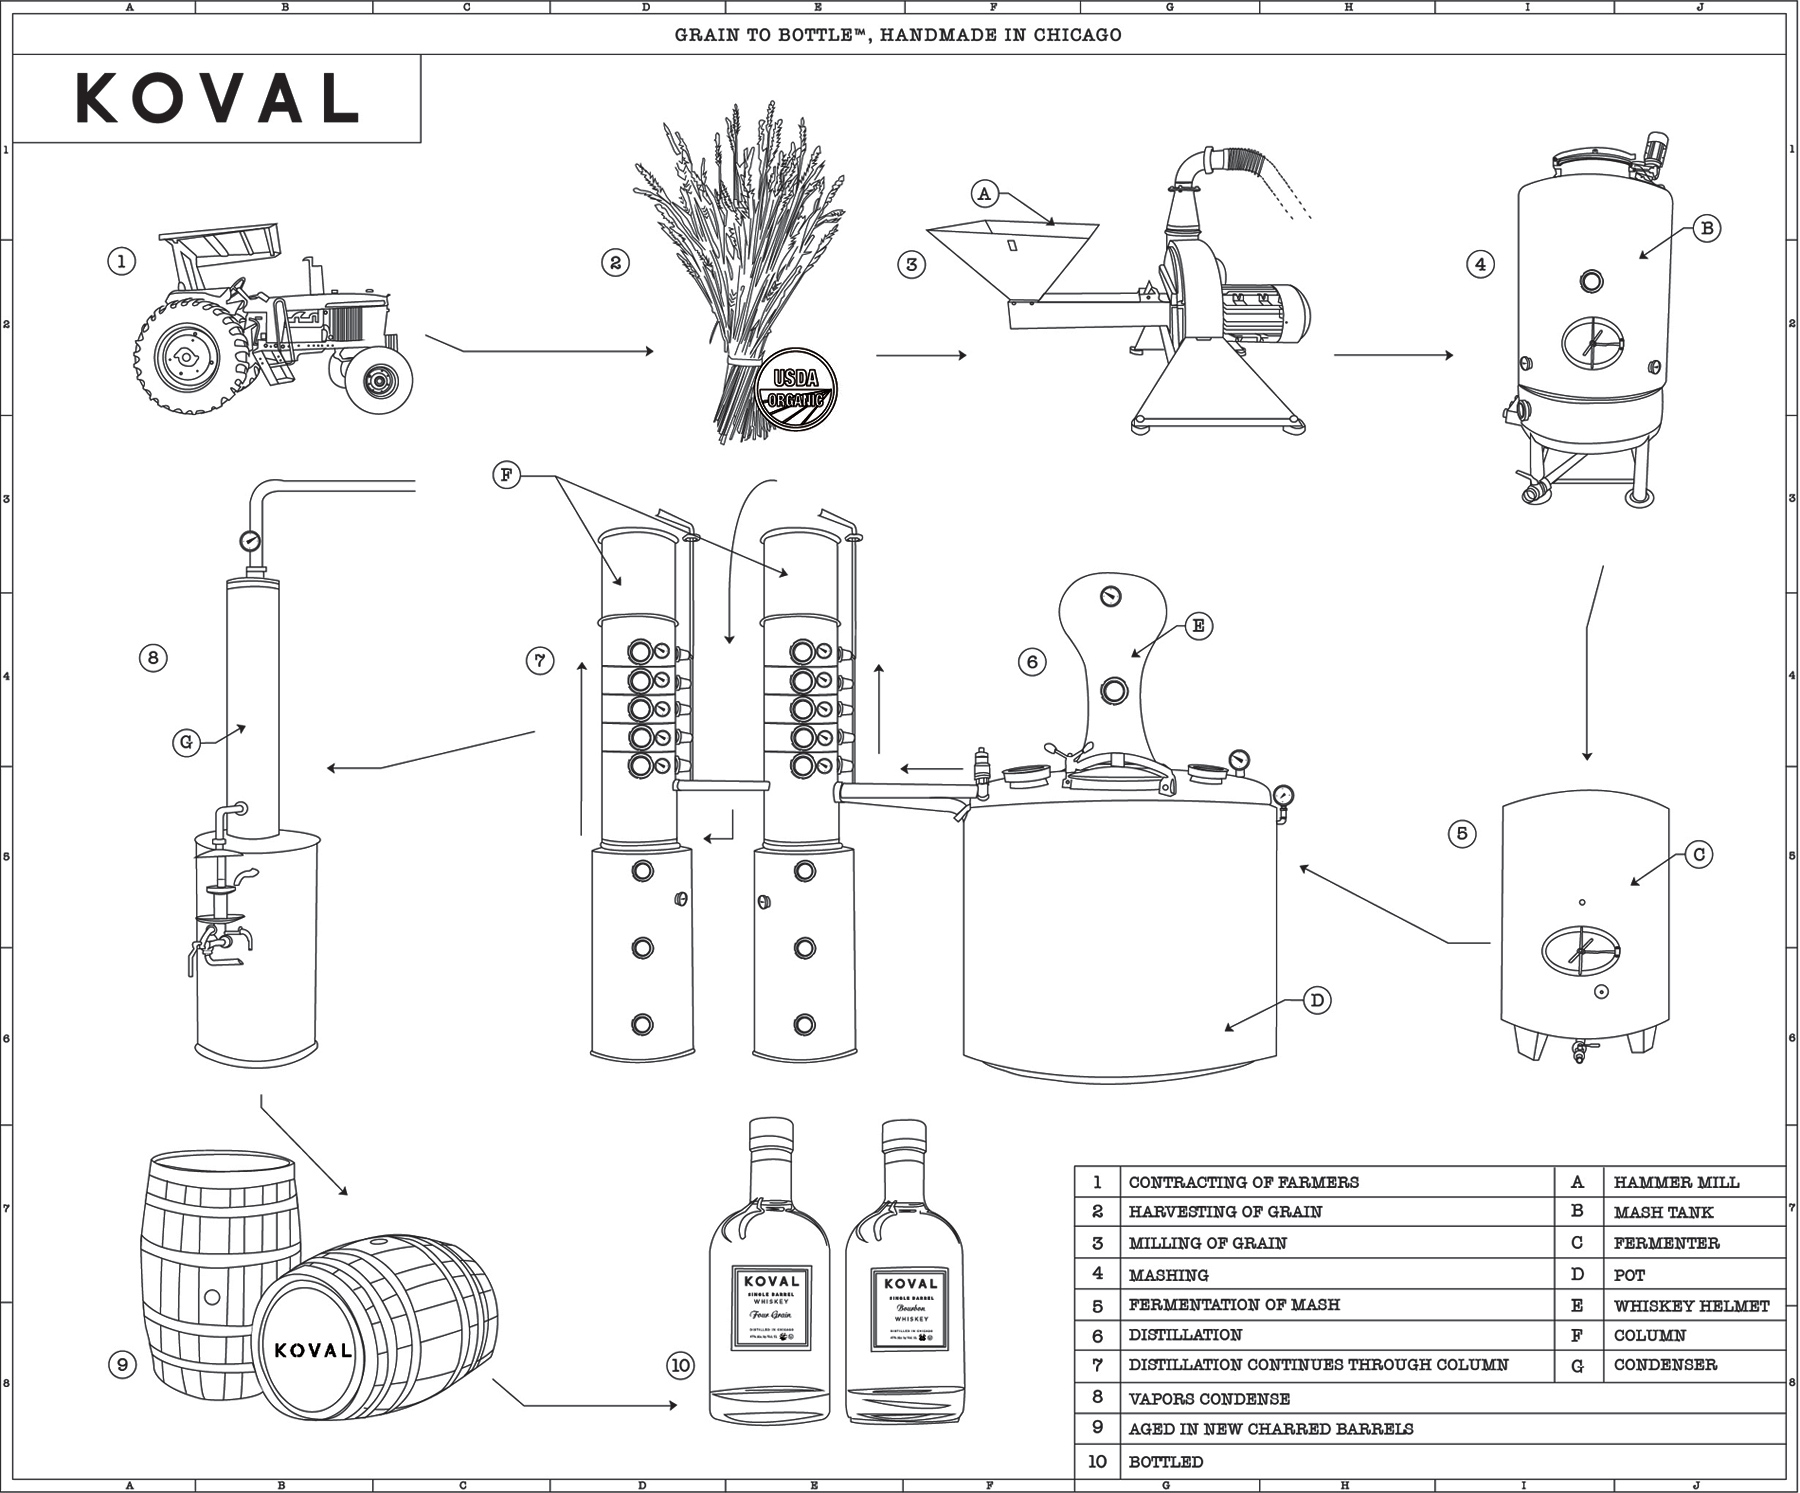 diagram of water purification process what is wiring koval distillery - grain to bottle